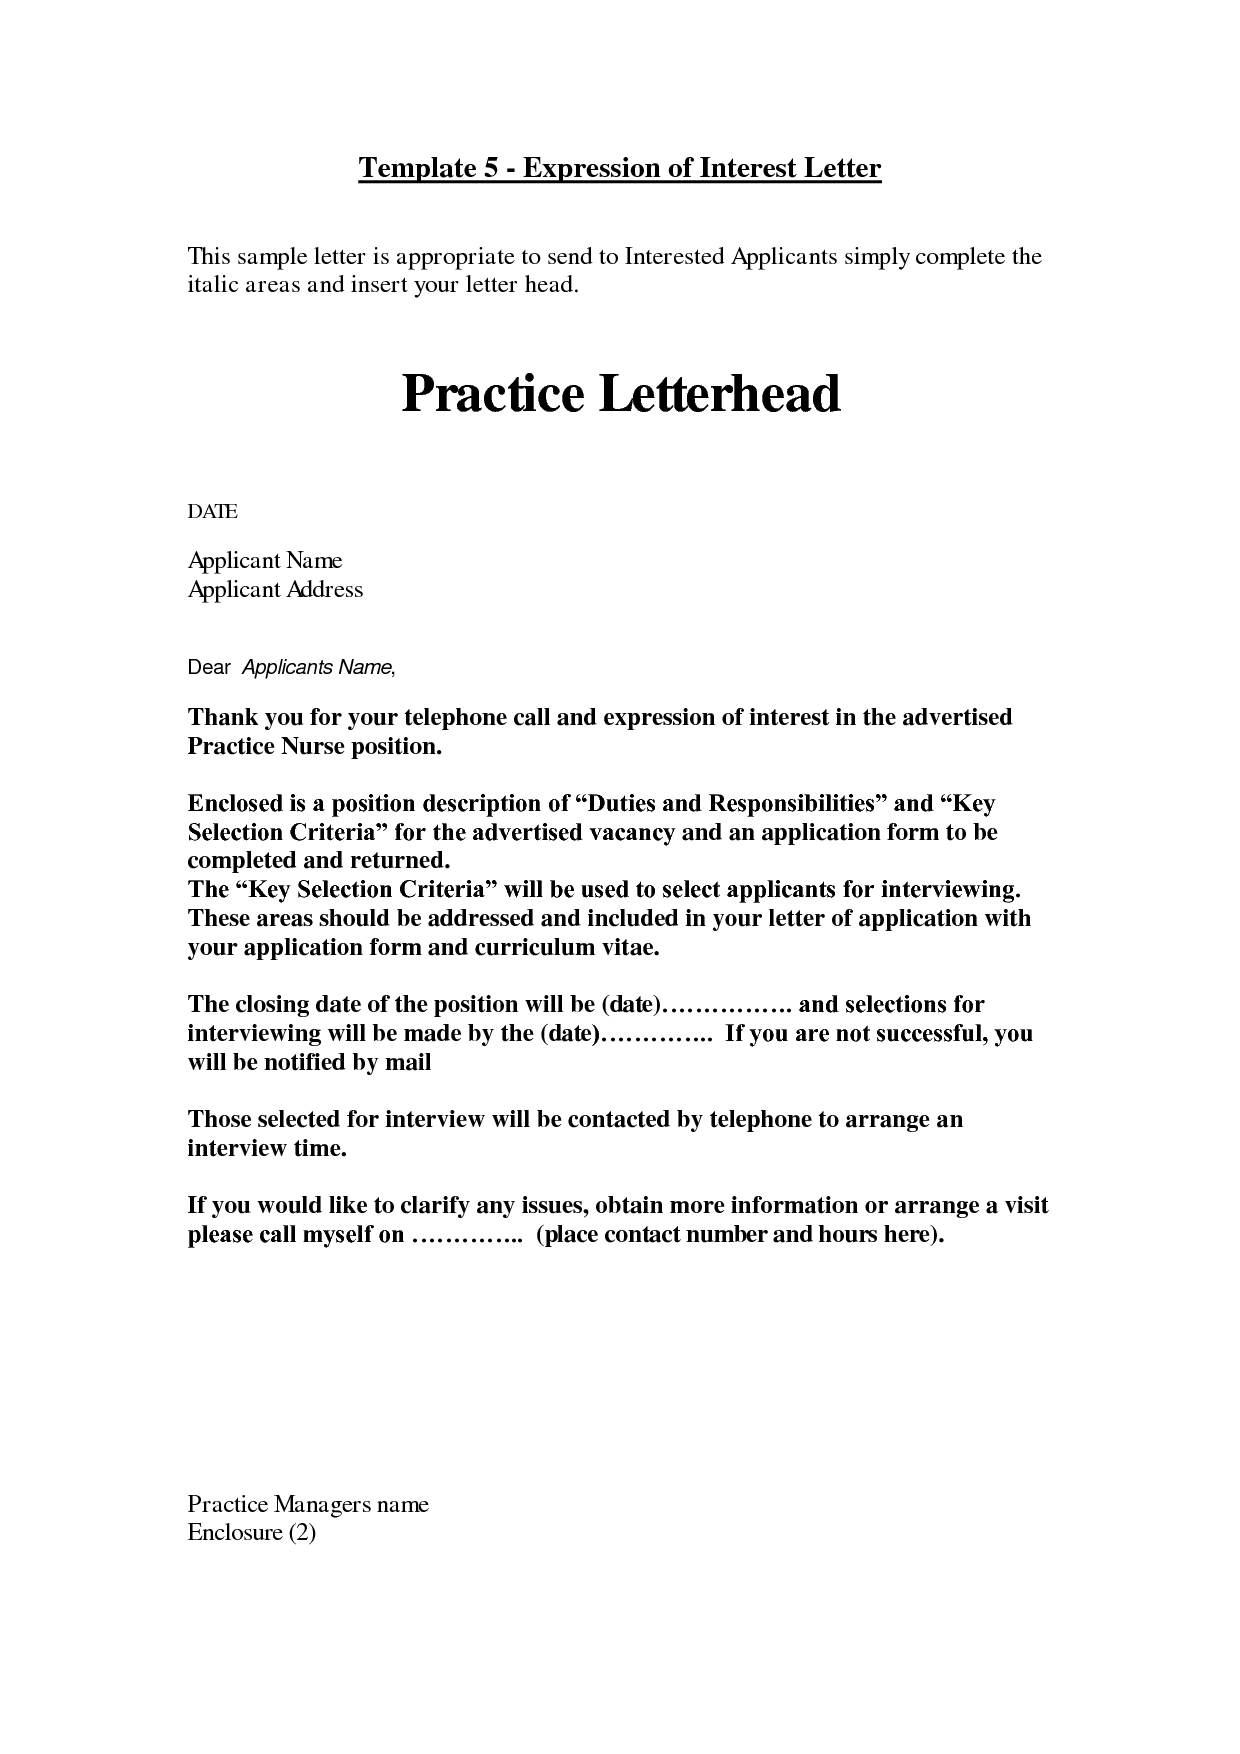 express of interest cover letter how to write a expression of interest letter cover letter